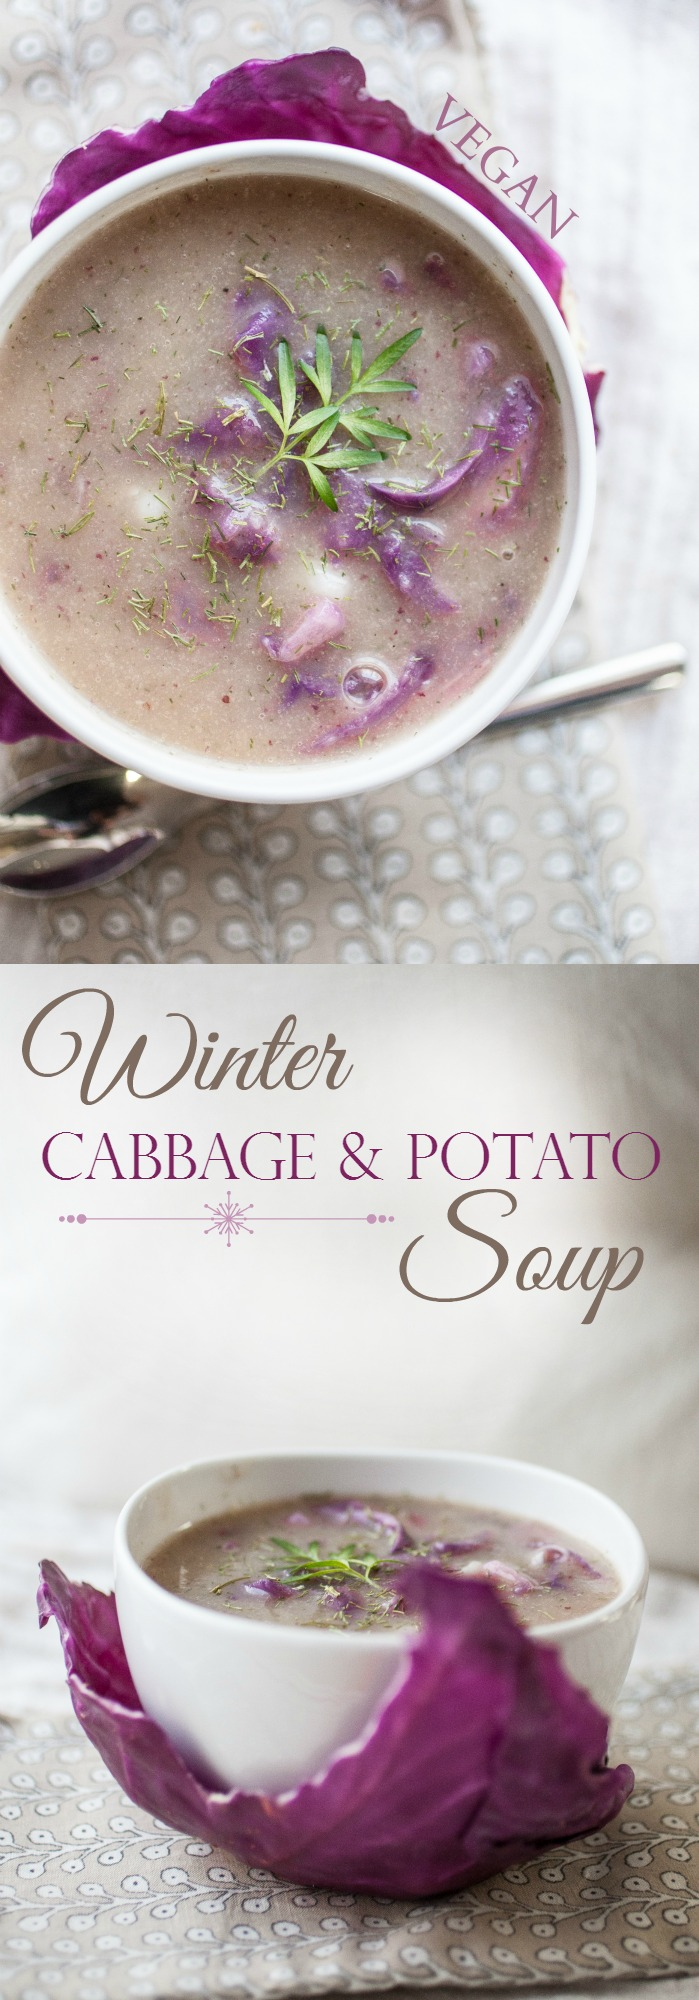 Produce On Parade - Winter Cabbage & Potato Soup - A luscious, blended vegetable soup with hearty chunks of potatoes and cabbage. Kissed with dill and coriander, and ready in a flash.